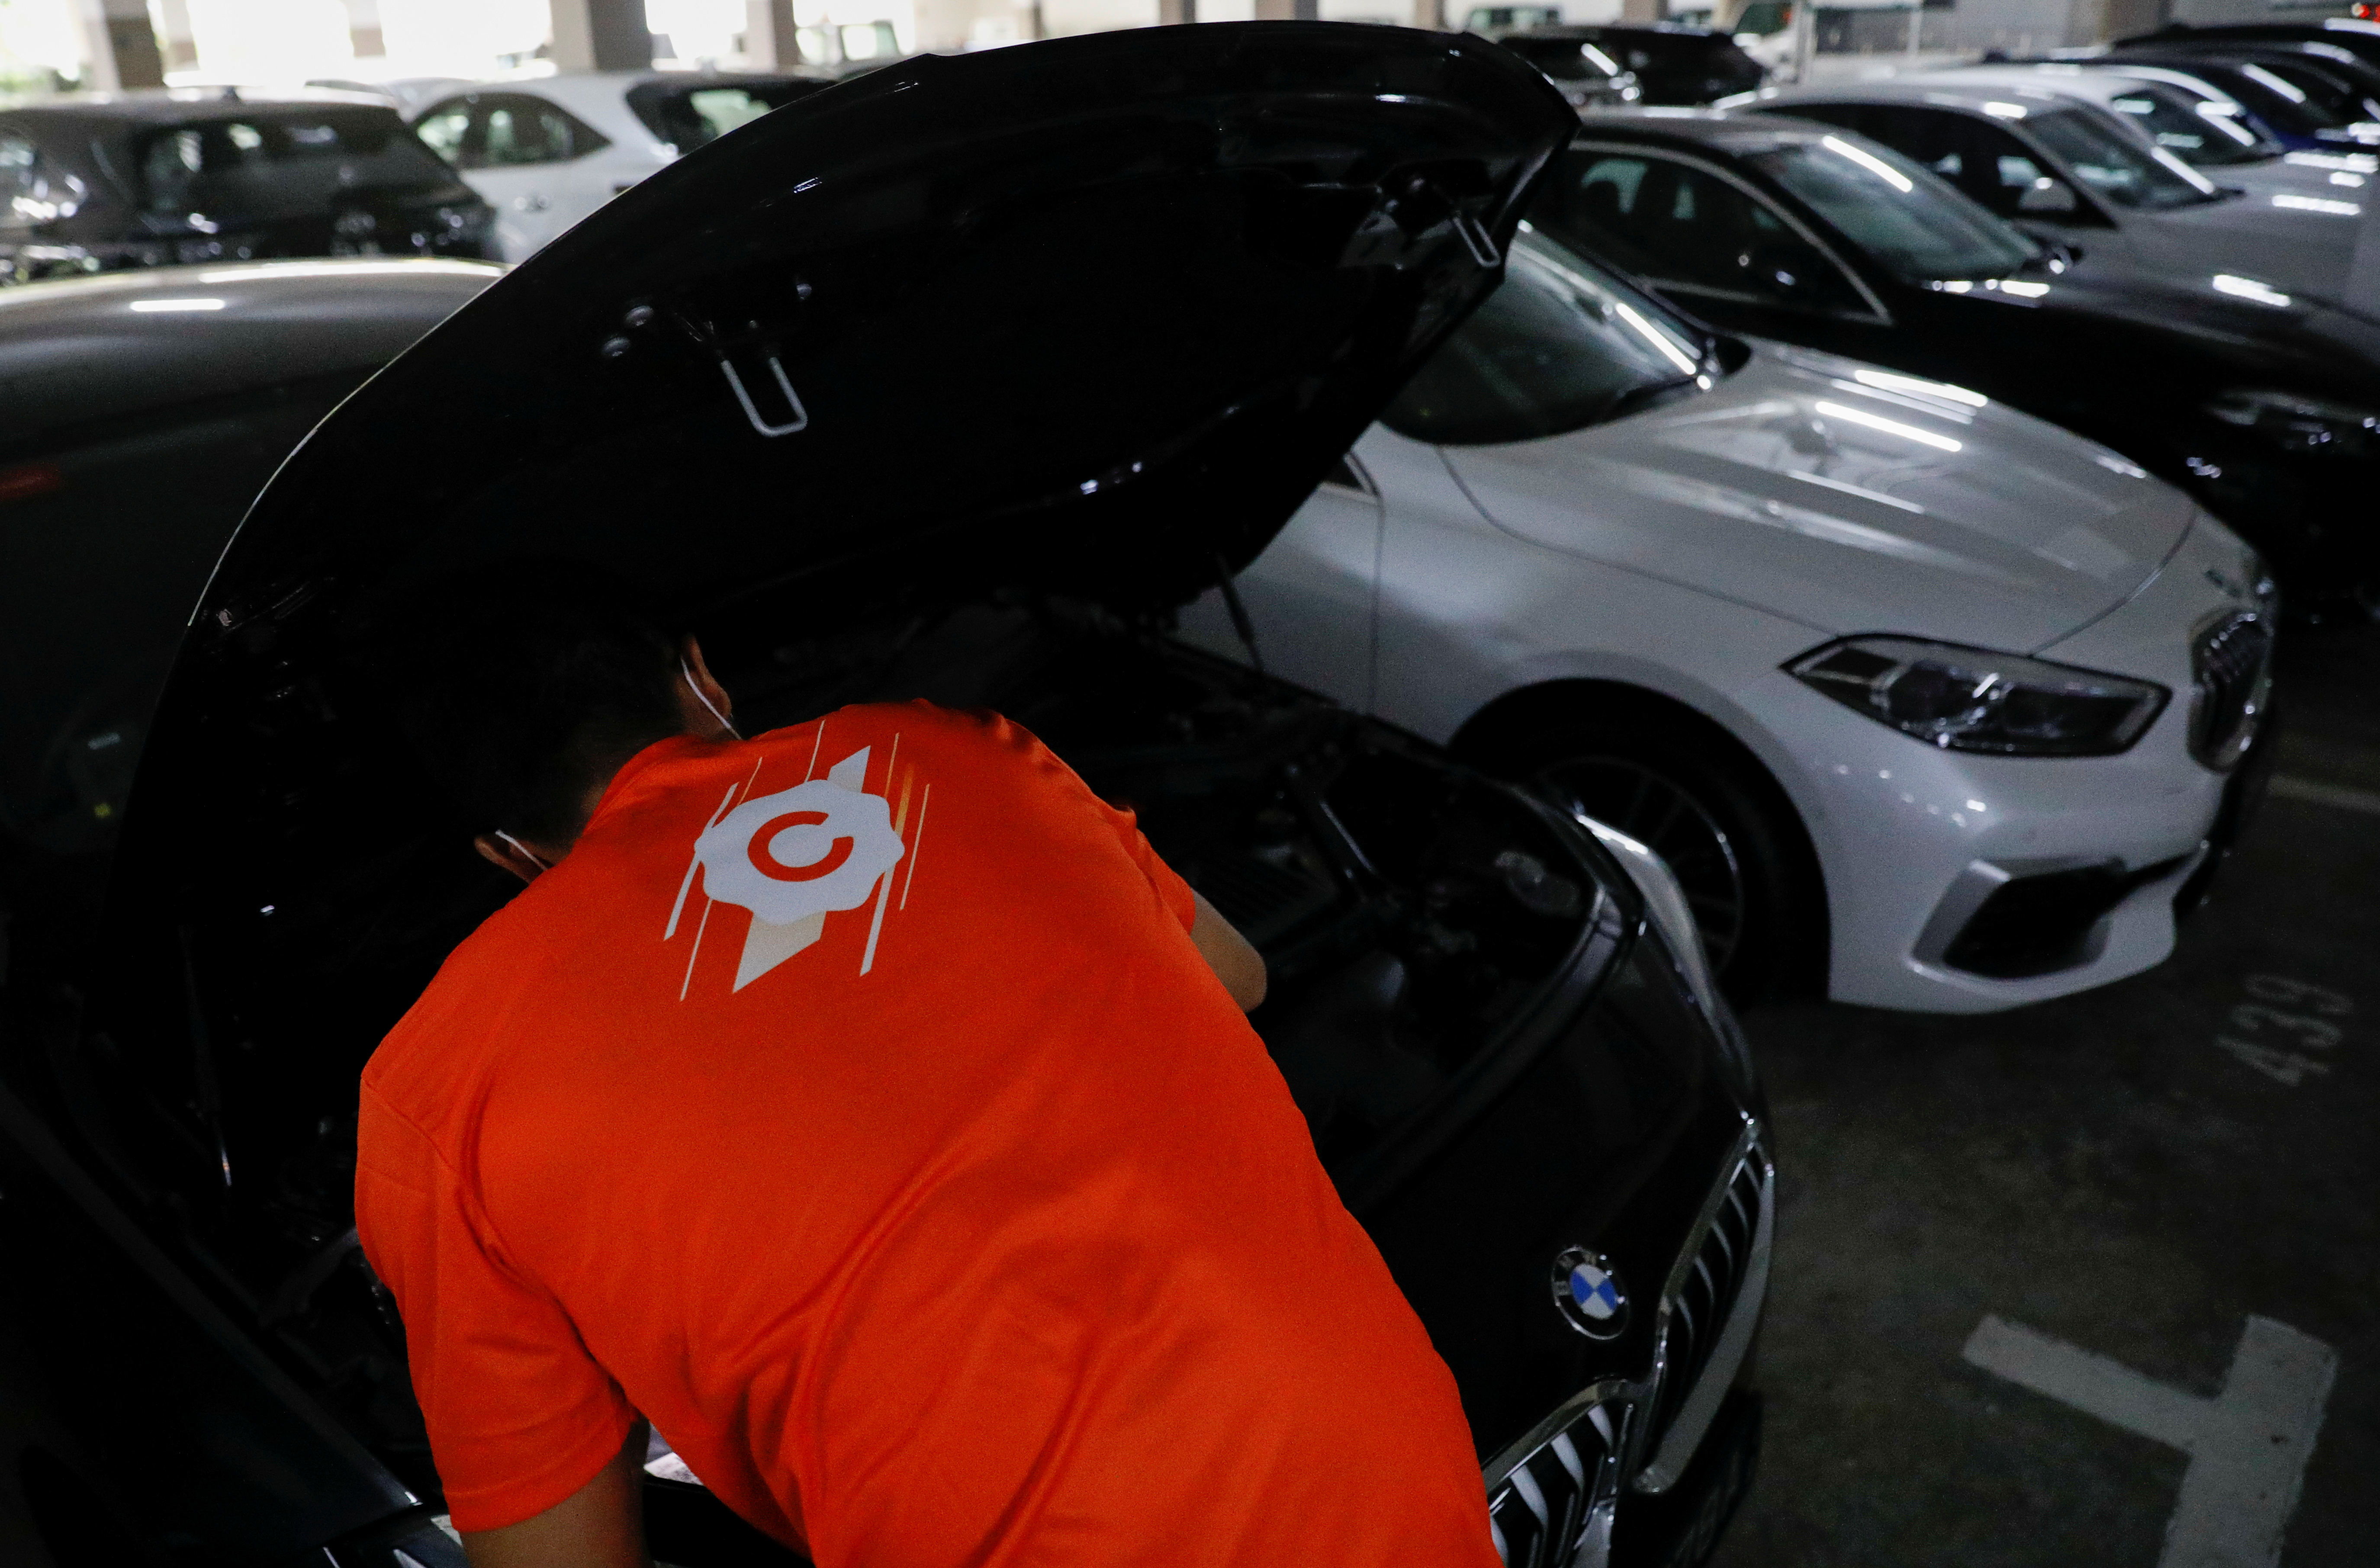 Goh Keane, assistant general manager of Carro, checks on one of their cars at their showroom in Singapore June 15, 2021.   REUTERS/Edgar Su